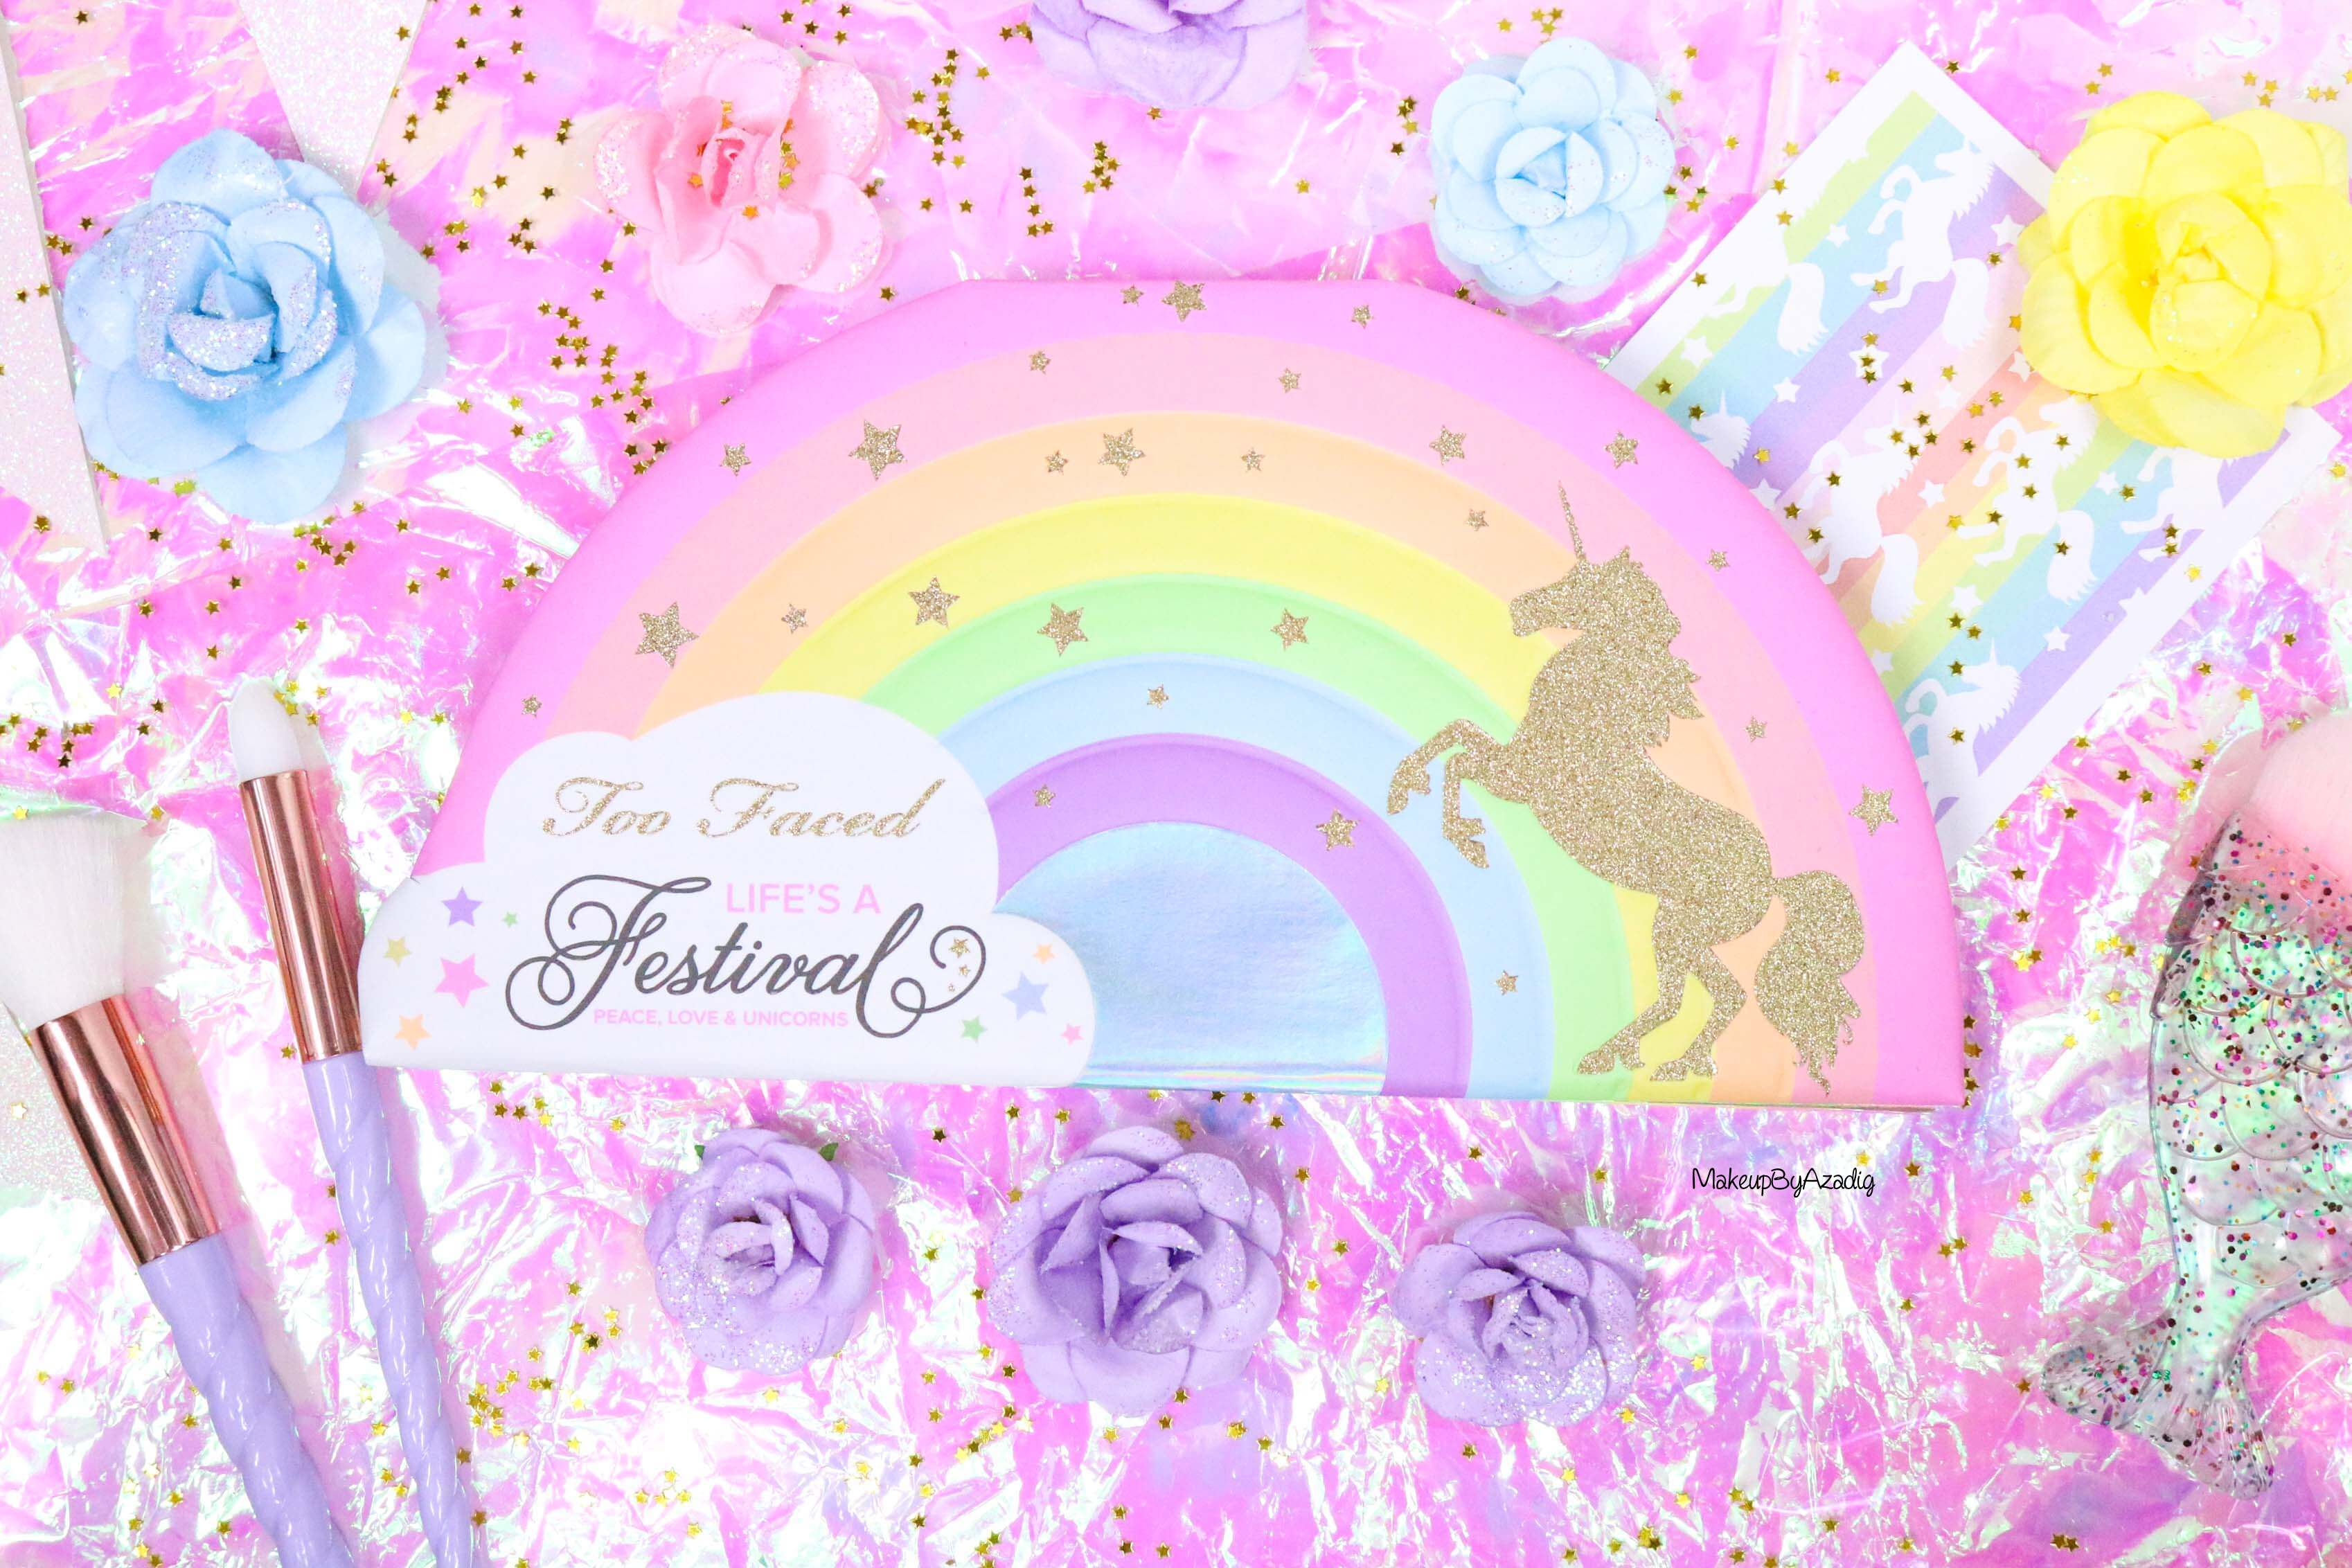 revue-palette-lifes-a-festival-too-faced-france-sephora-avis-prix-revue-makeupbyazadig-collection-licorne-paillette